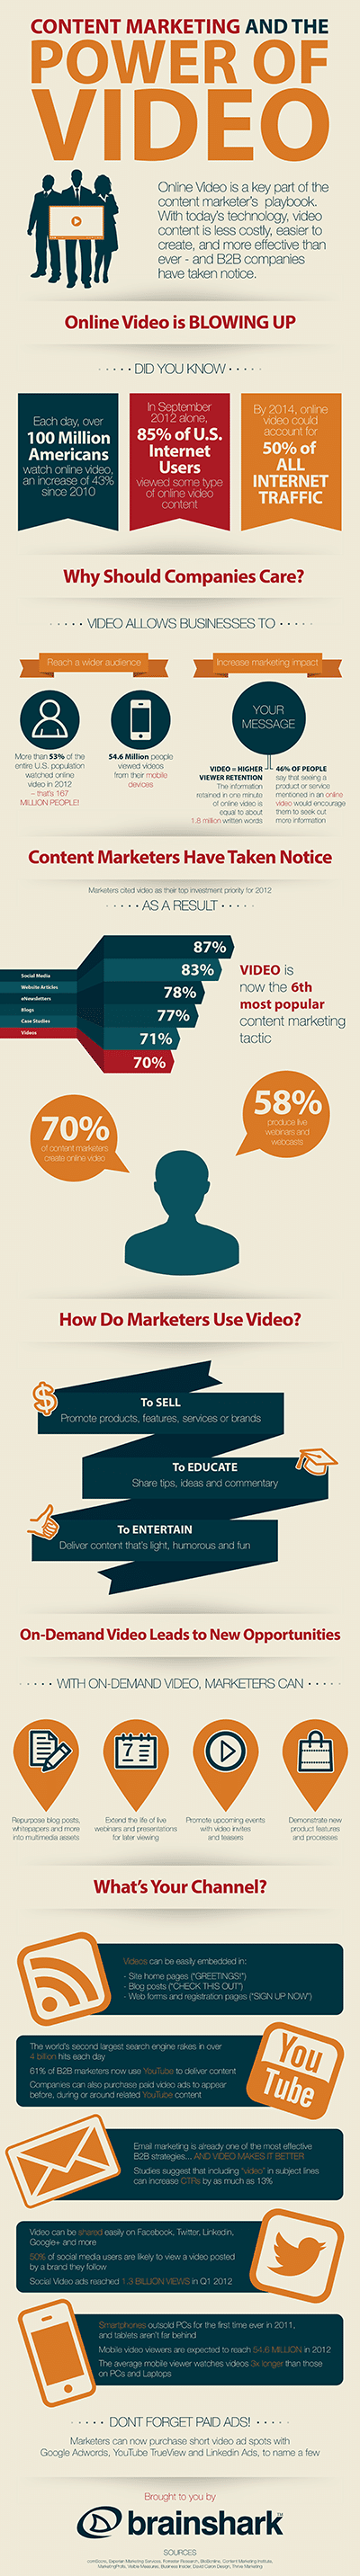 infographic-the-power-of-video